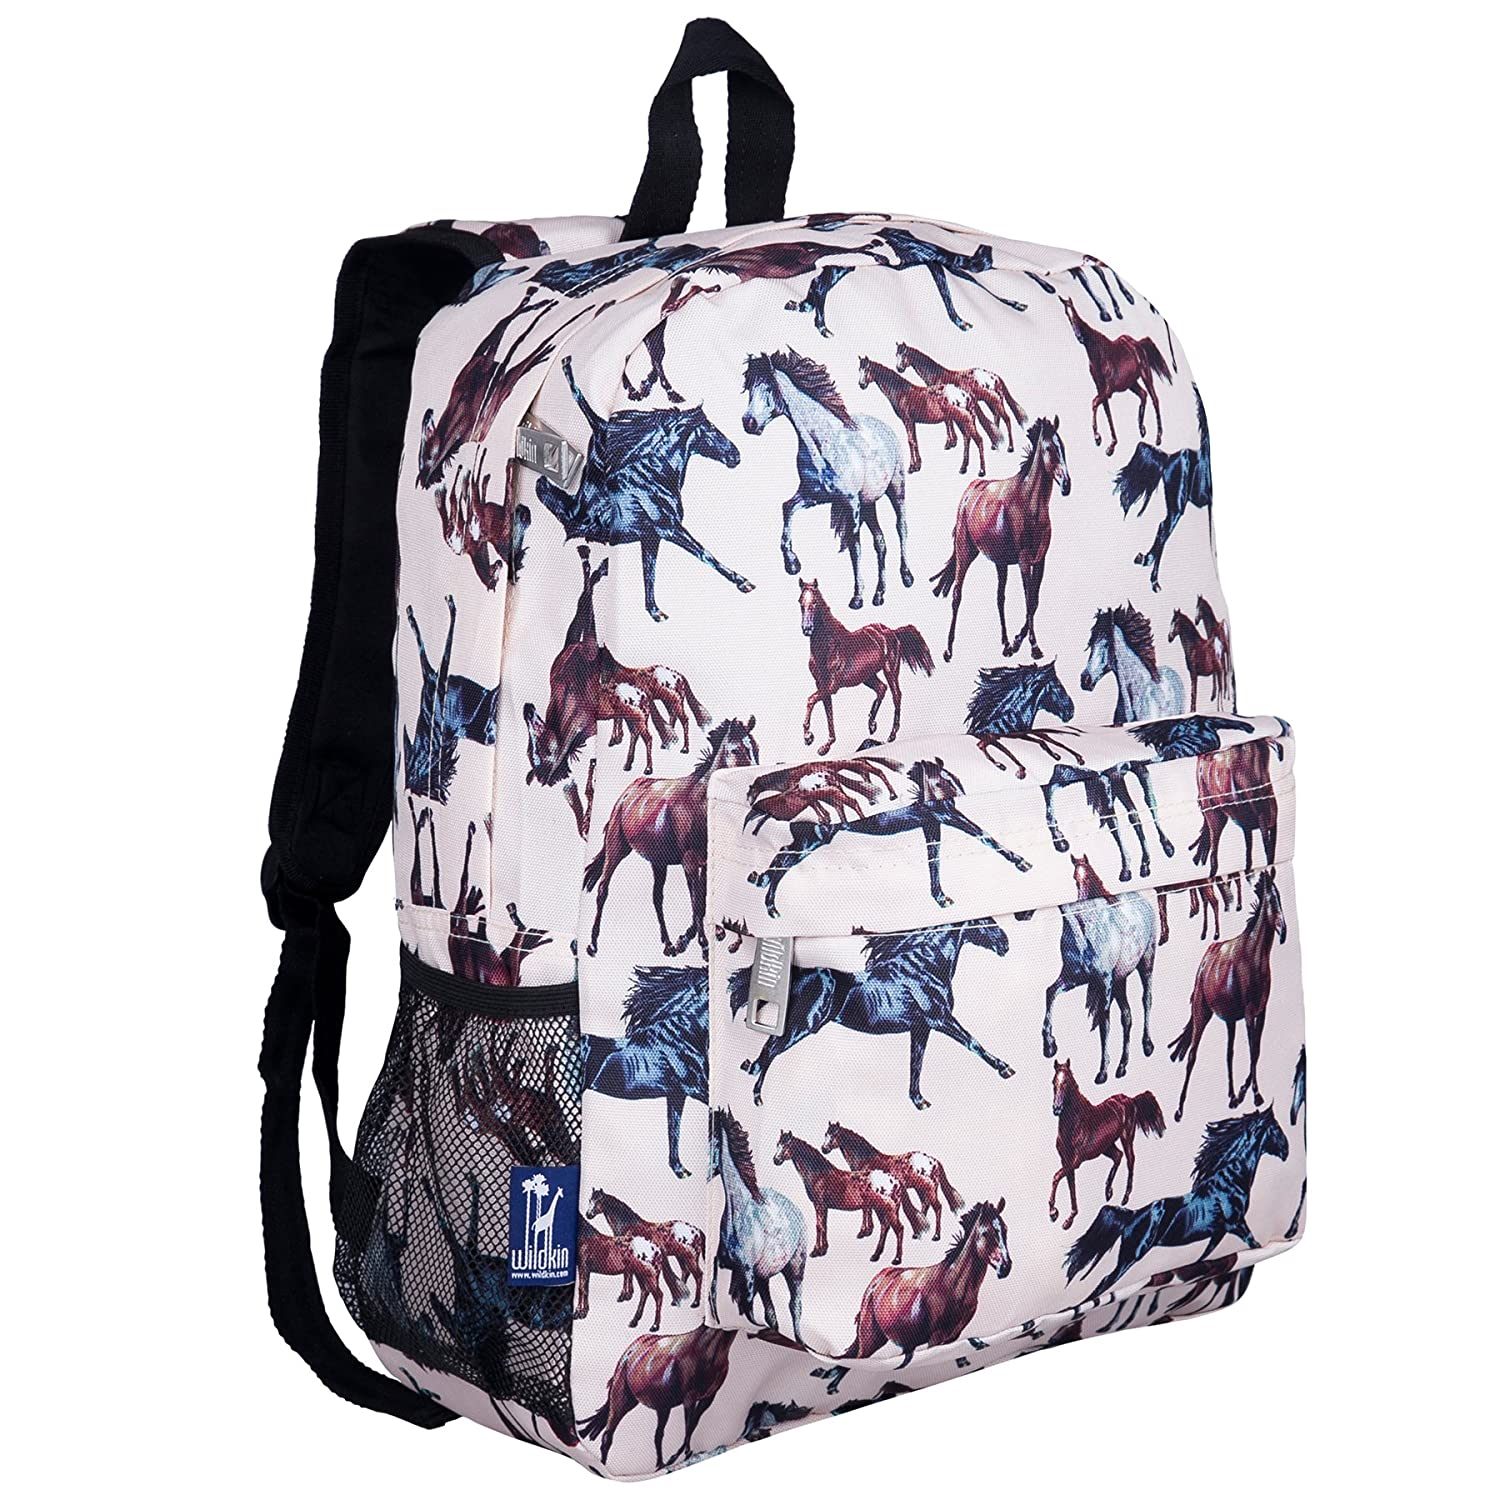 Horse Dreams One Size Backpack by Wildkin 16Inch Moisture Resistant with Adjustable, Padded Straps, Ages 615 Years